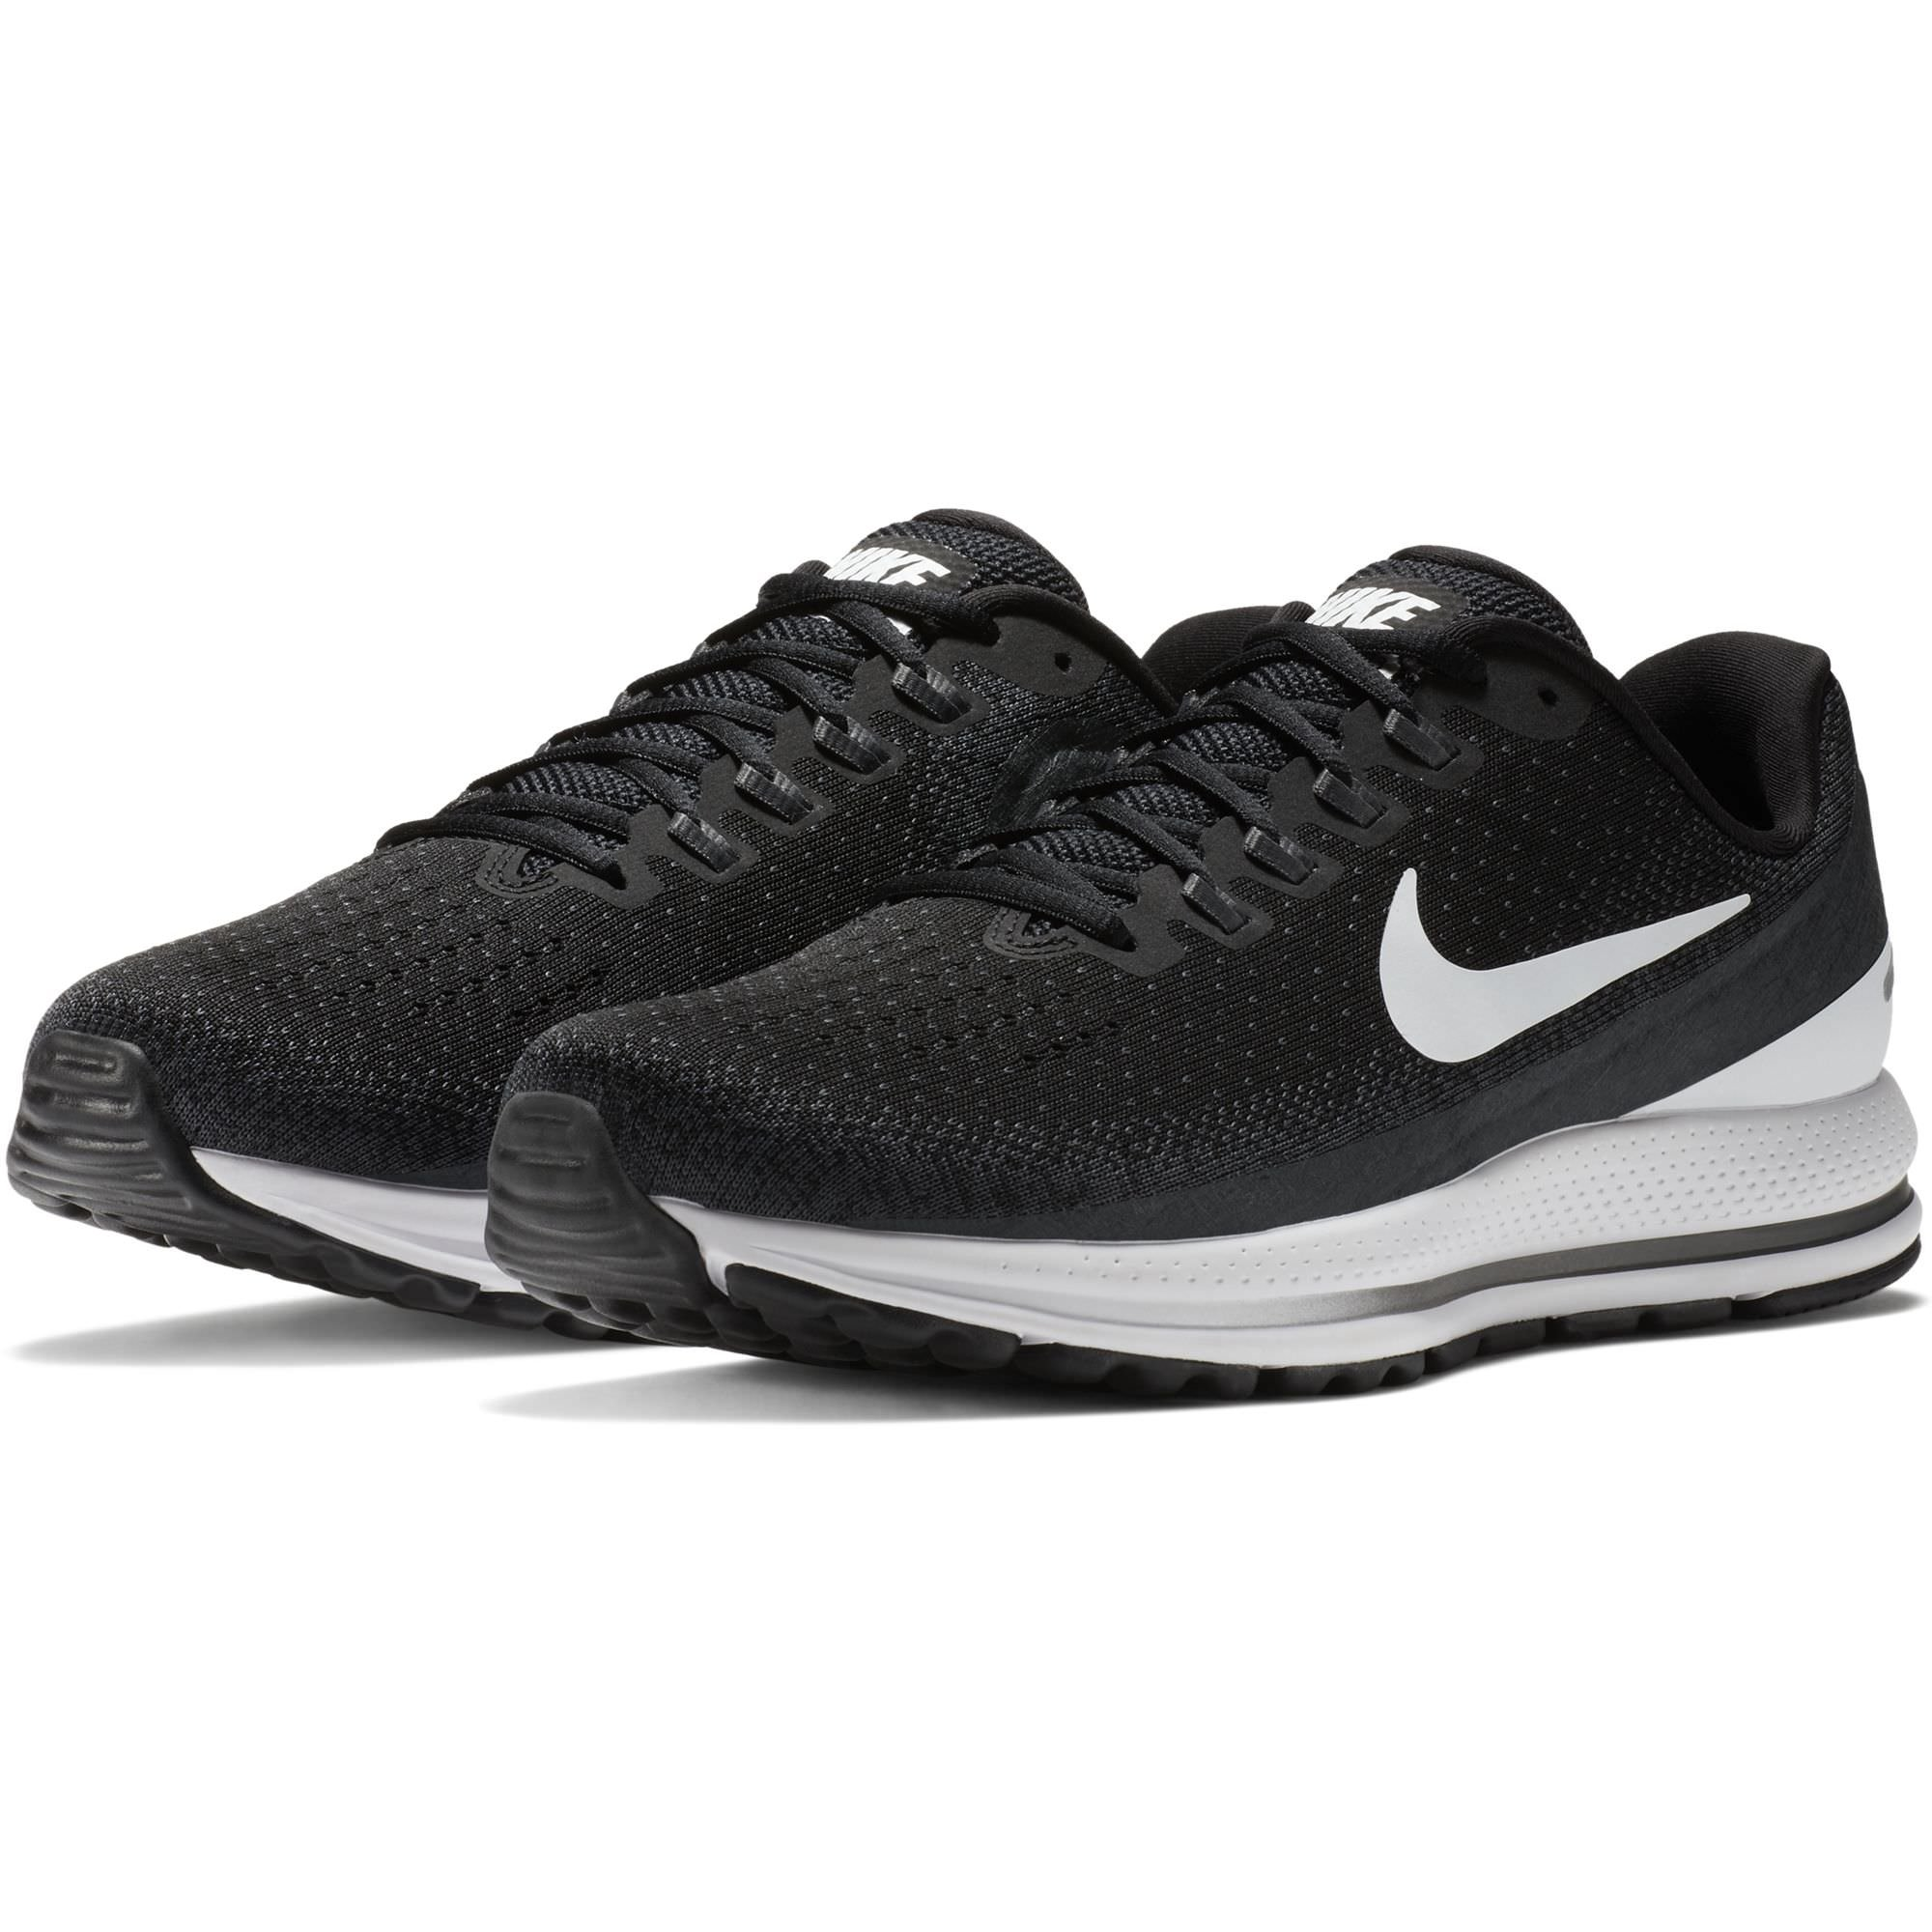 283c0dc2db0 Galleon - NIKE Men s Air Zoom Vomero 13 Running Shoe Wide (2E)  Black White-Anthracite 10.5